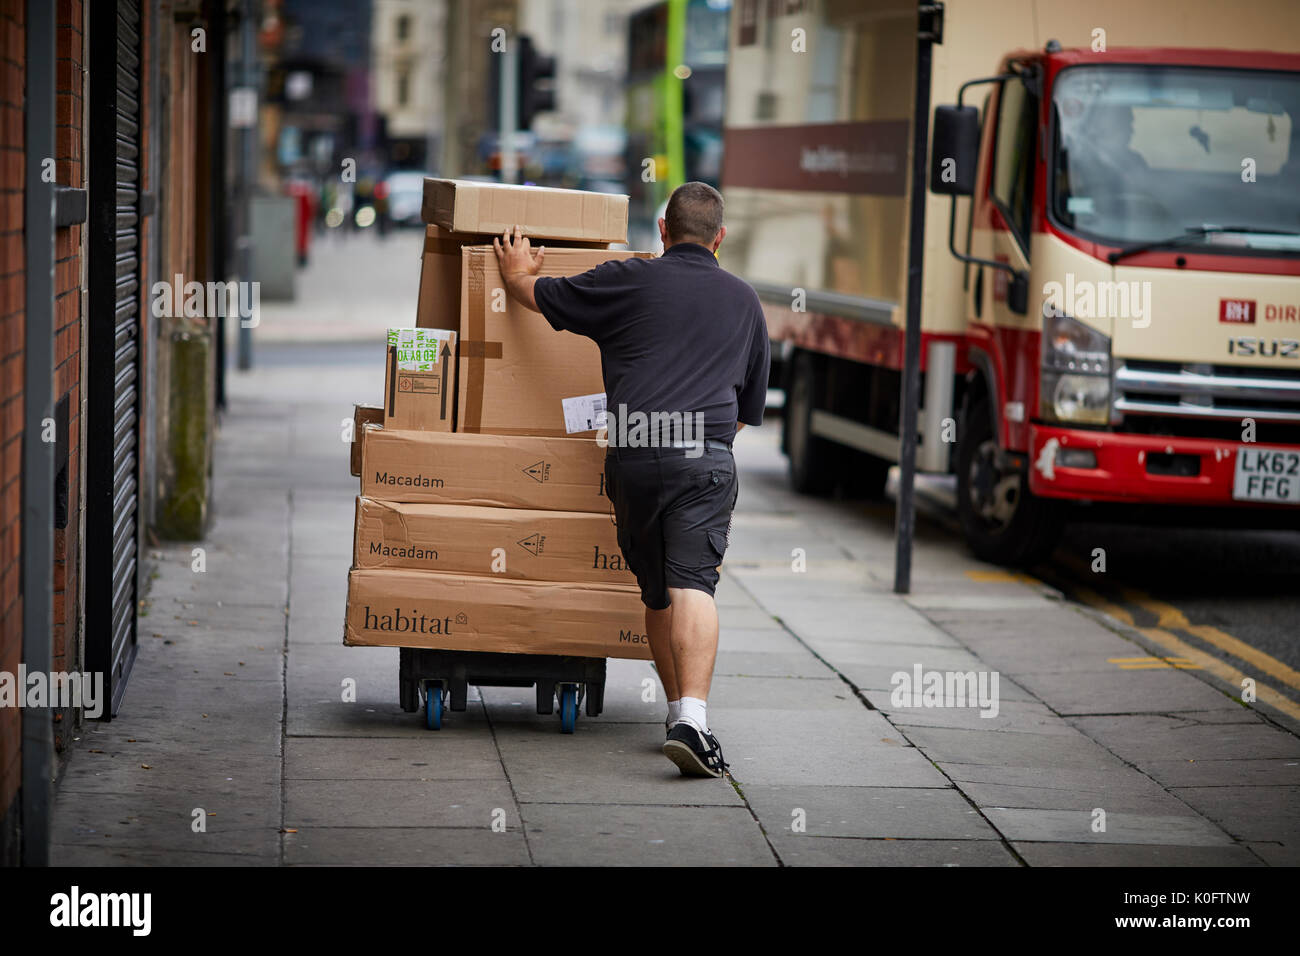 A delivery van parks no the pavement and double yellow line as a courier delivers large boxes by hand trolly - Stock Image